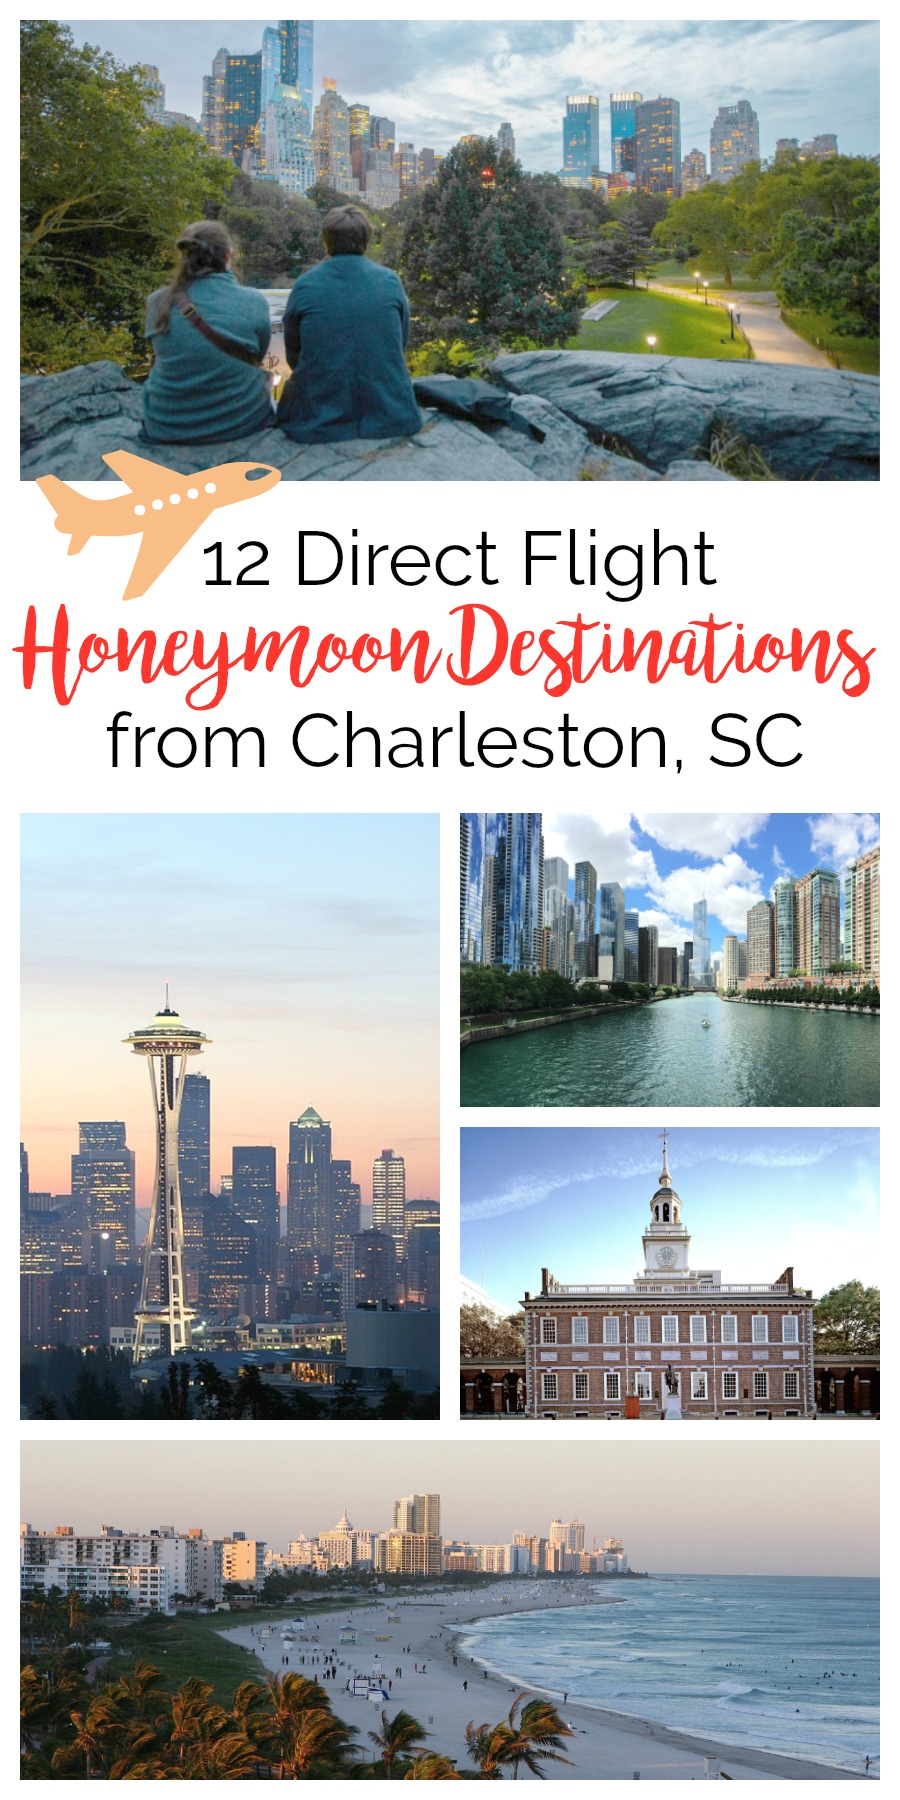 12 Direct Flight Honeymoon Destinations from Charleston, South Carolina | Palmetto State Weddings